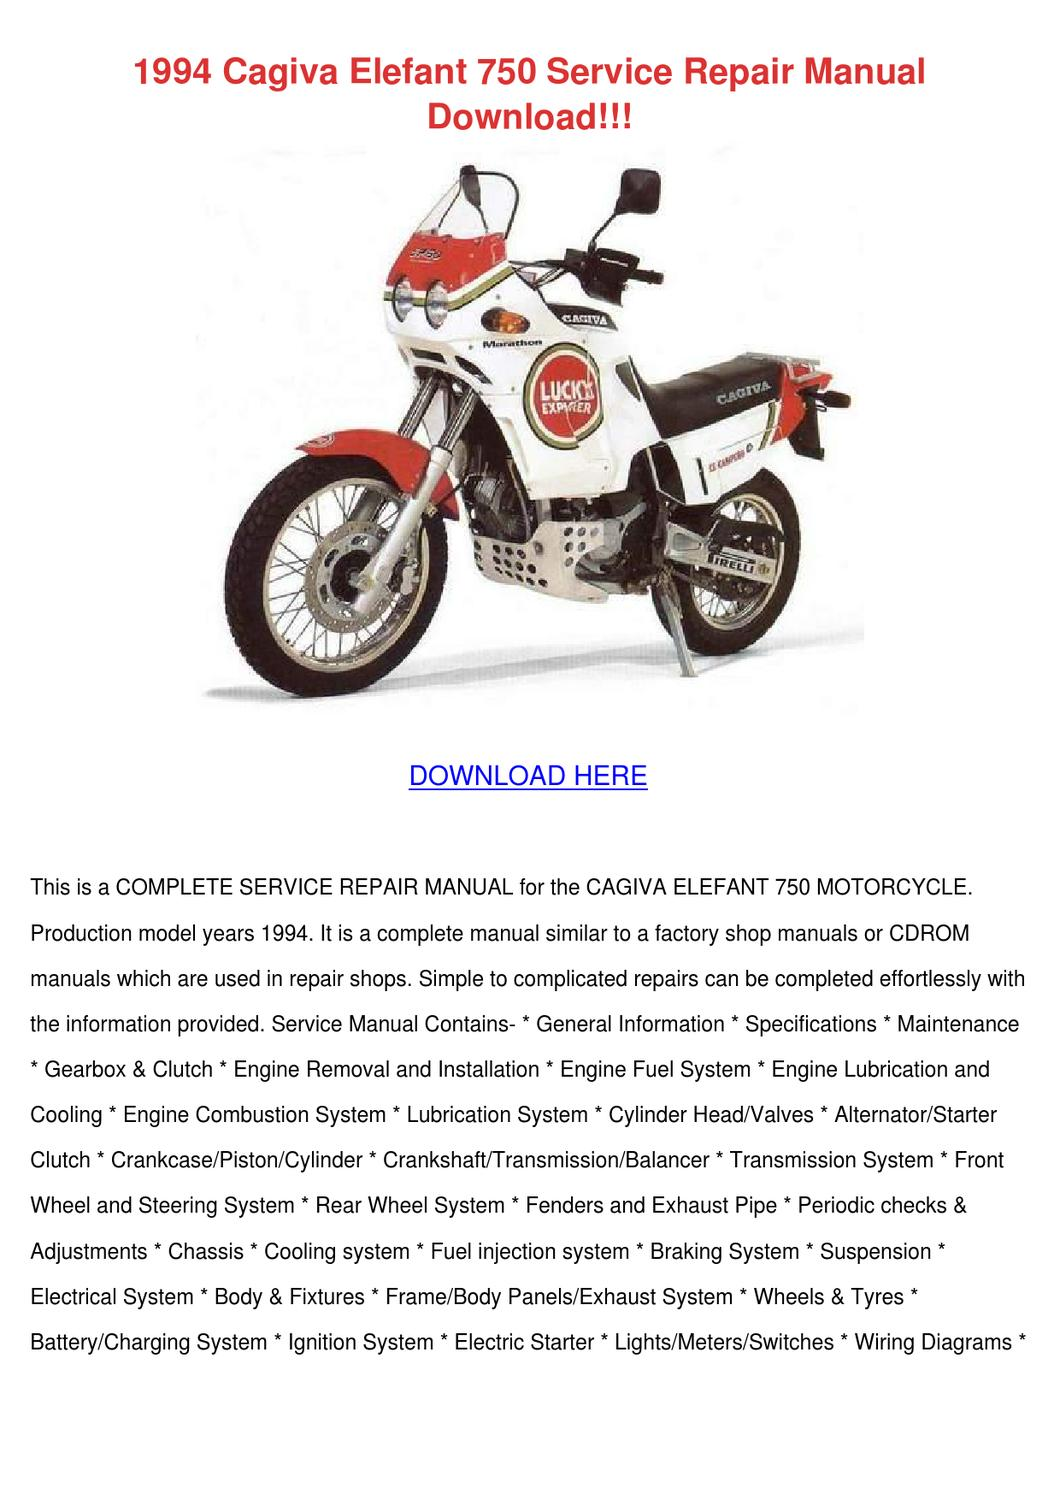 1994 cagiva elefant 750 service repair manual by deborahcarrion issuu rh issuu com cagiva elefant 125 wiring diagram cagiva elefant 125 wiring diagram